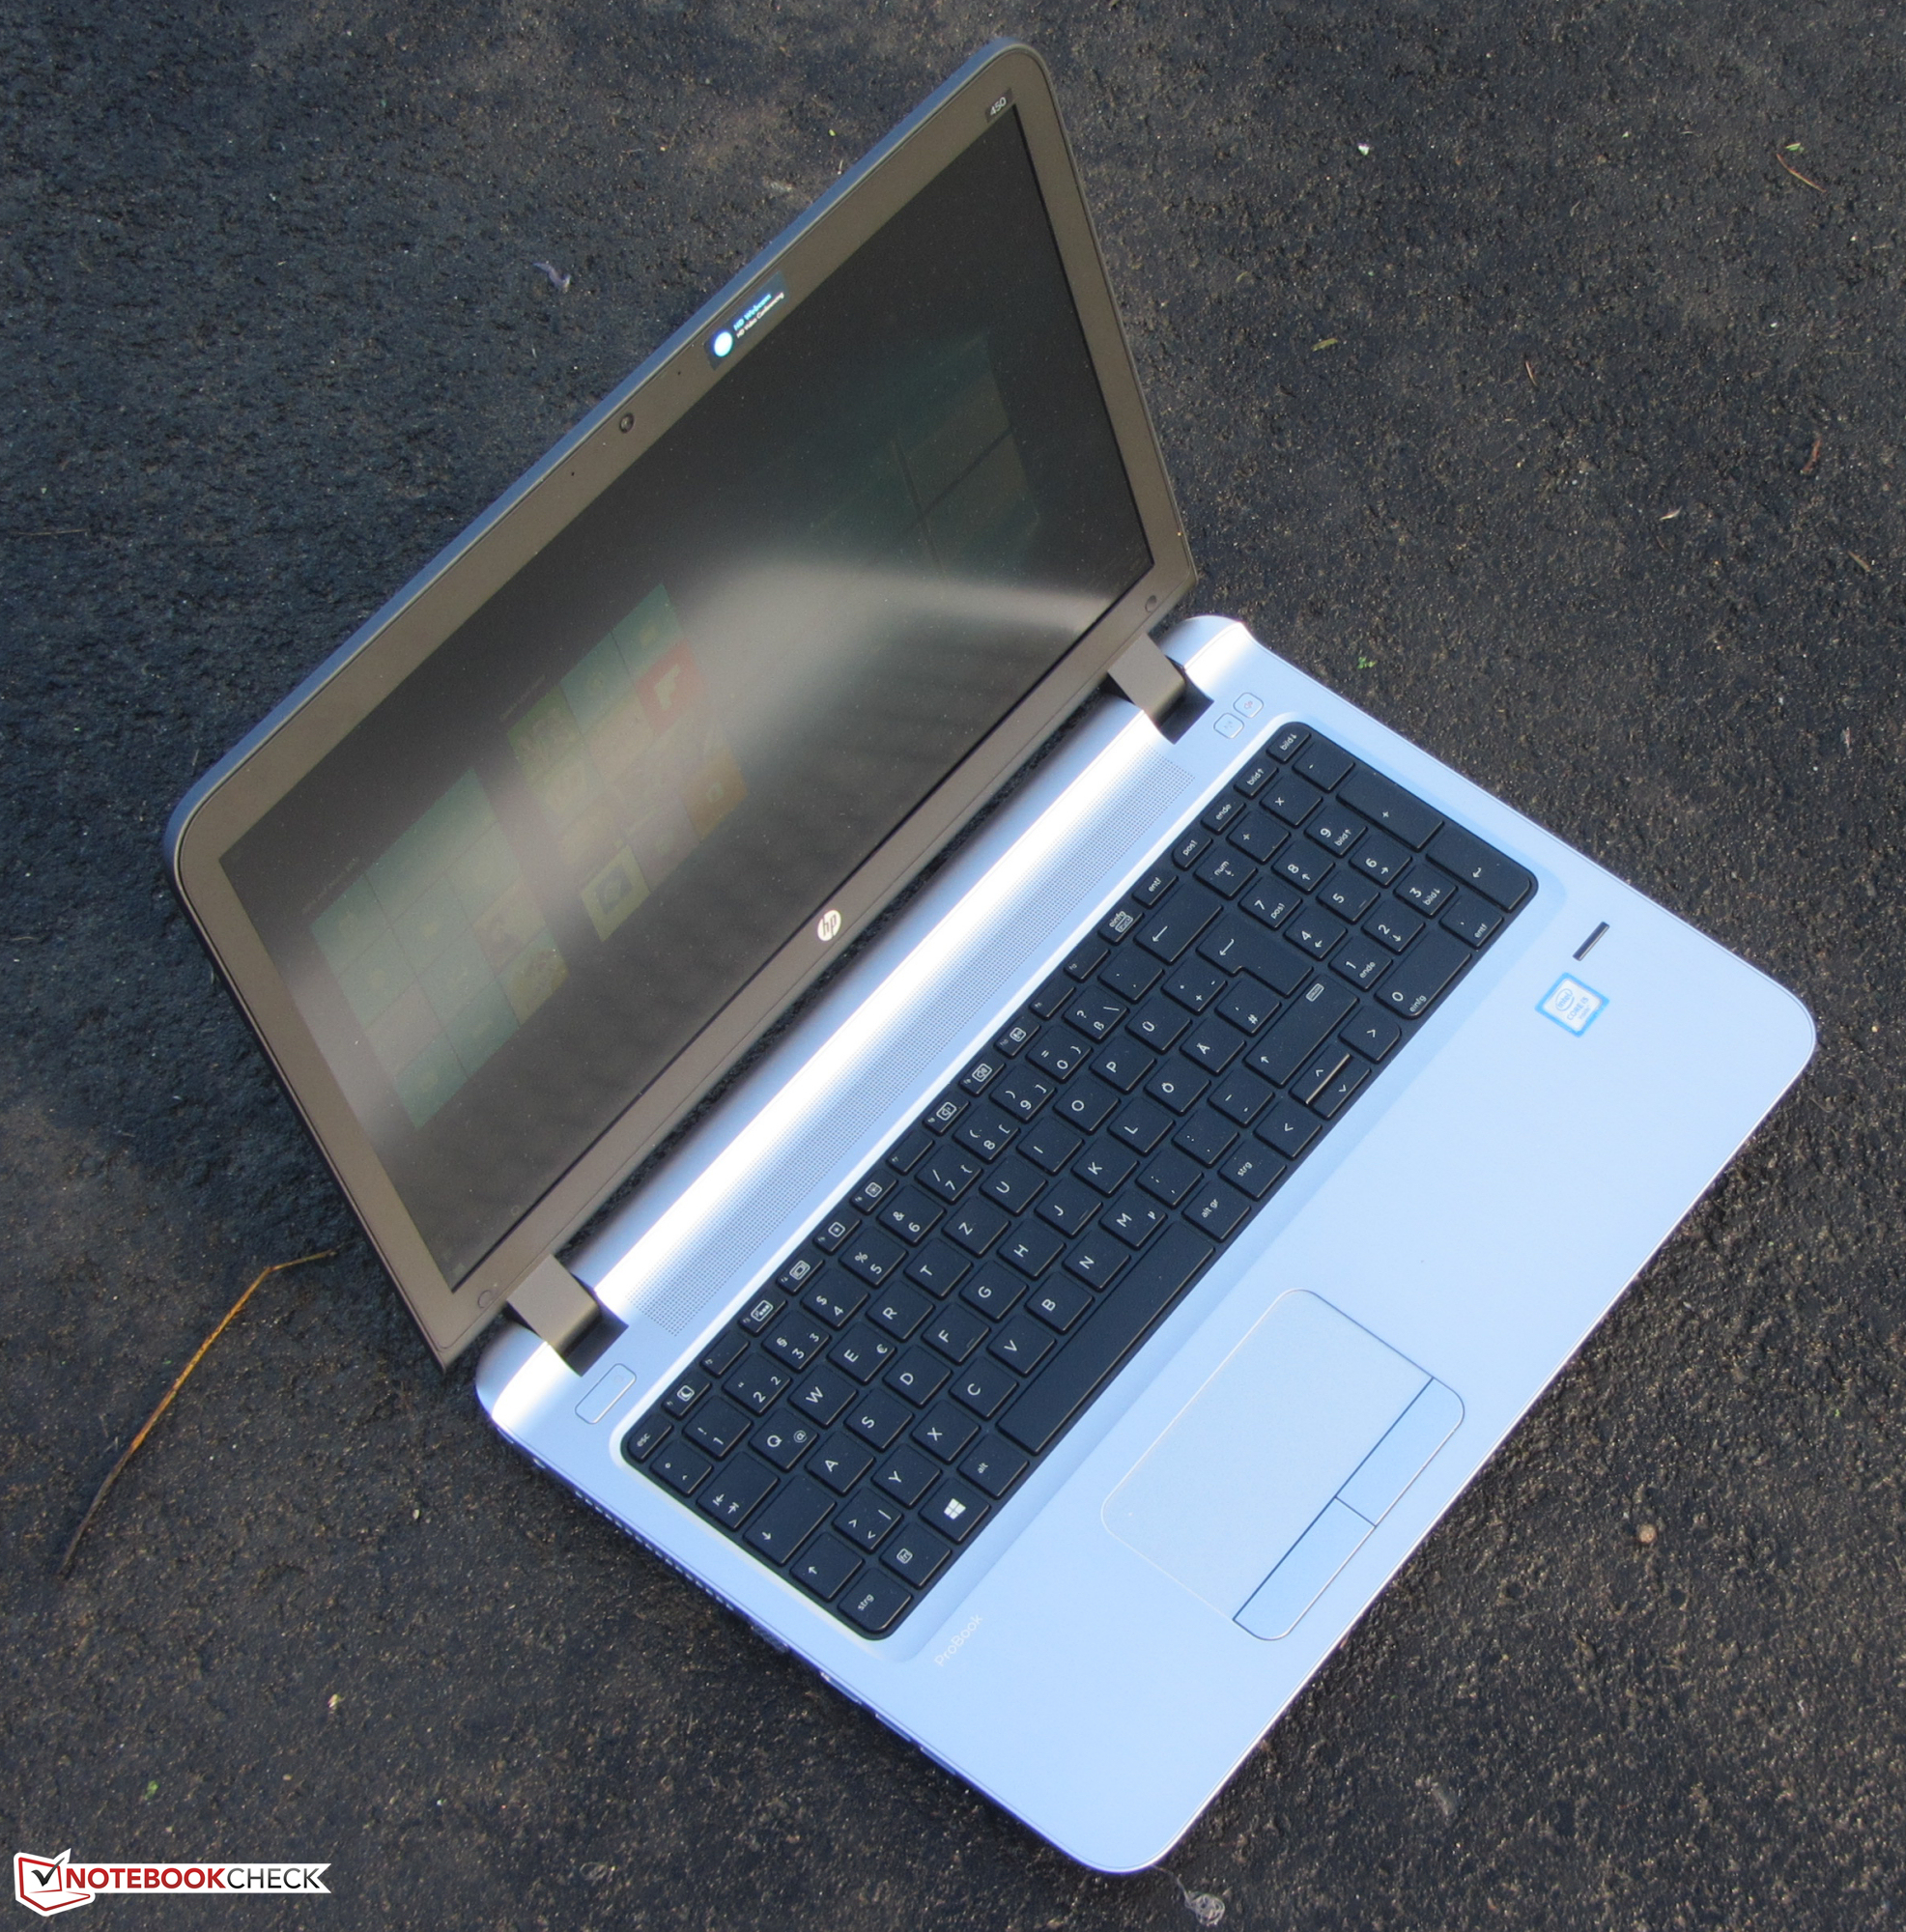 Hp Probook 450 G4 Hp Probook 450 G3 Notebook Review Notebookcheck Reviews